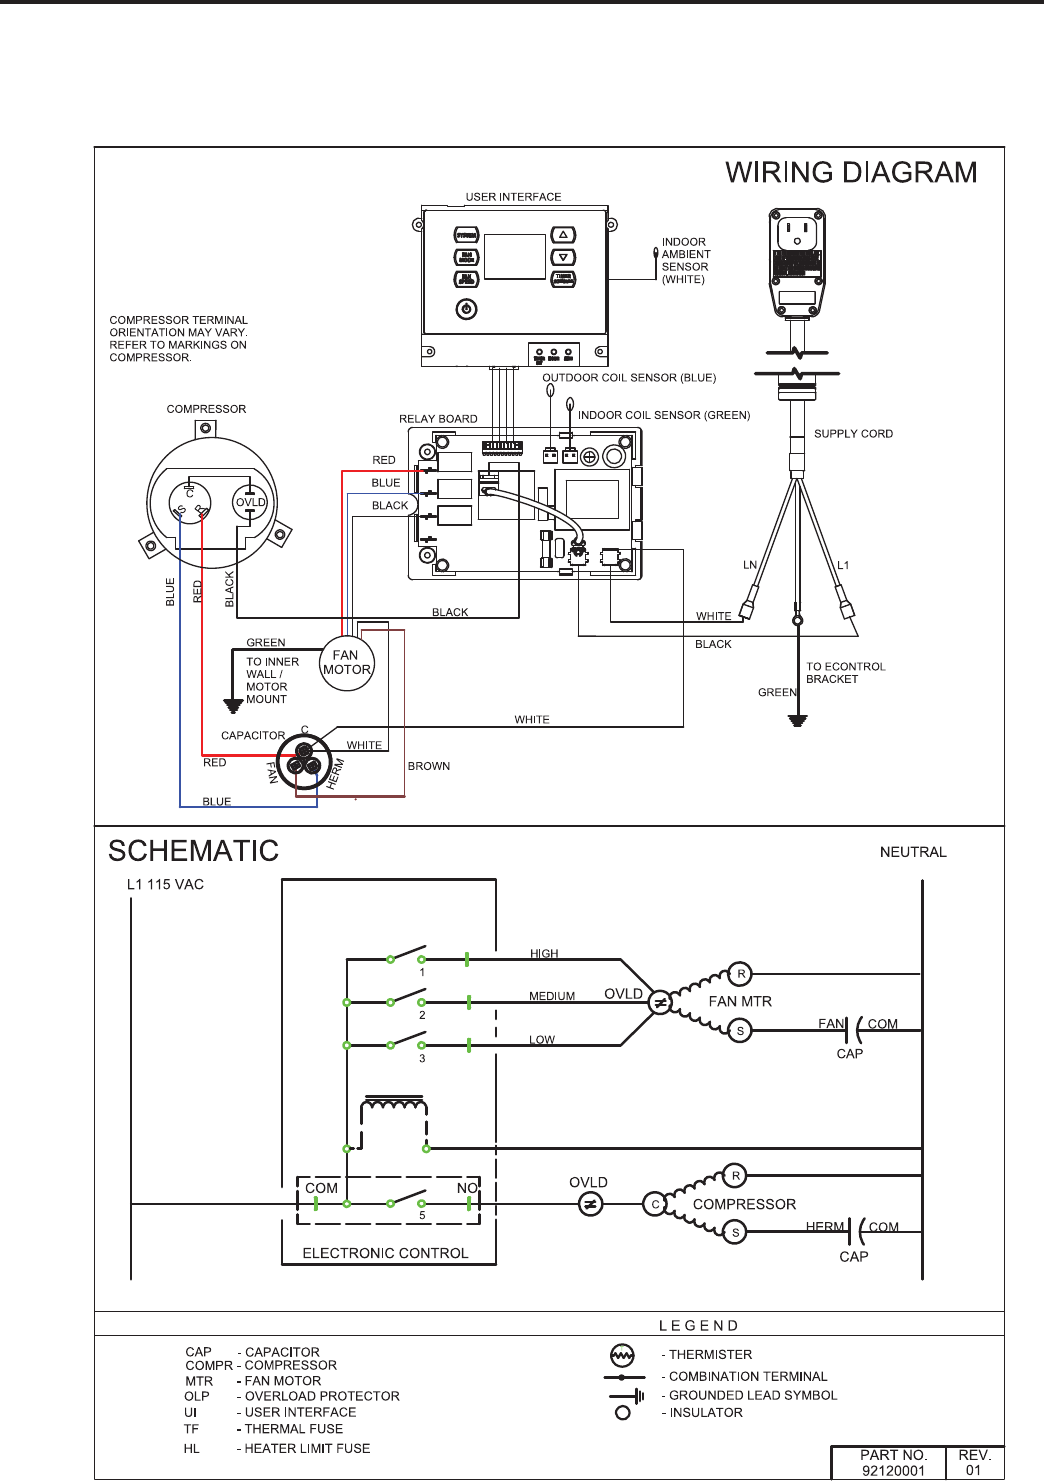 4074cecf 7c2f 49d8 a7b8 b2c560e83b0b bg36 vornado heater wiring diagram thermo king tripac apu diagram vornado wiring diagram at mifinder.co